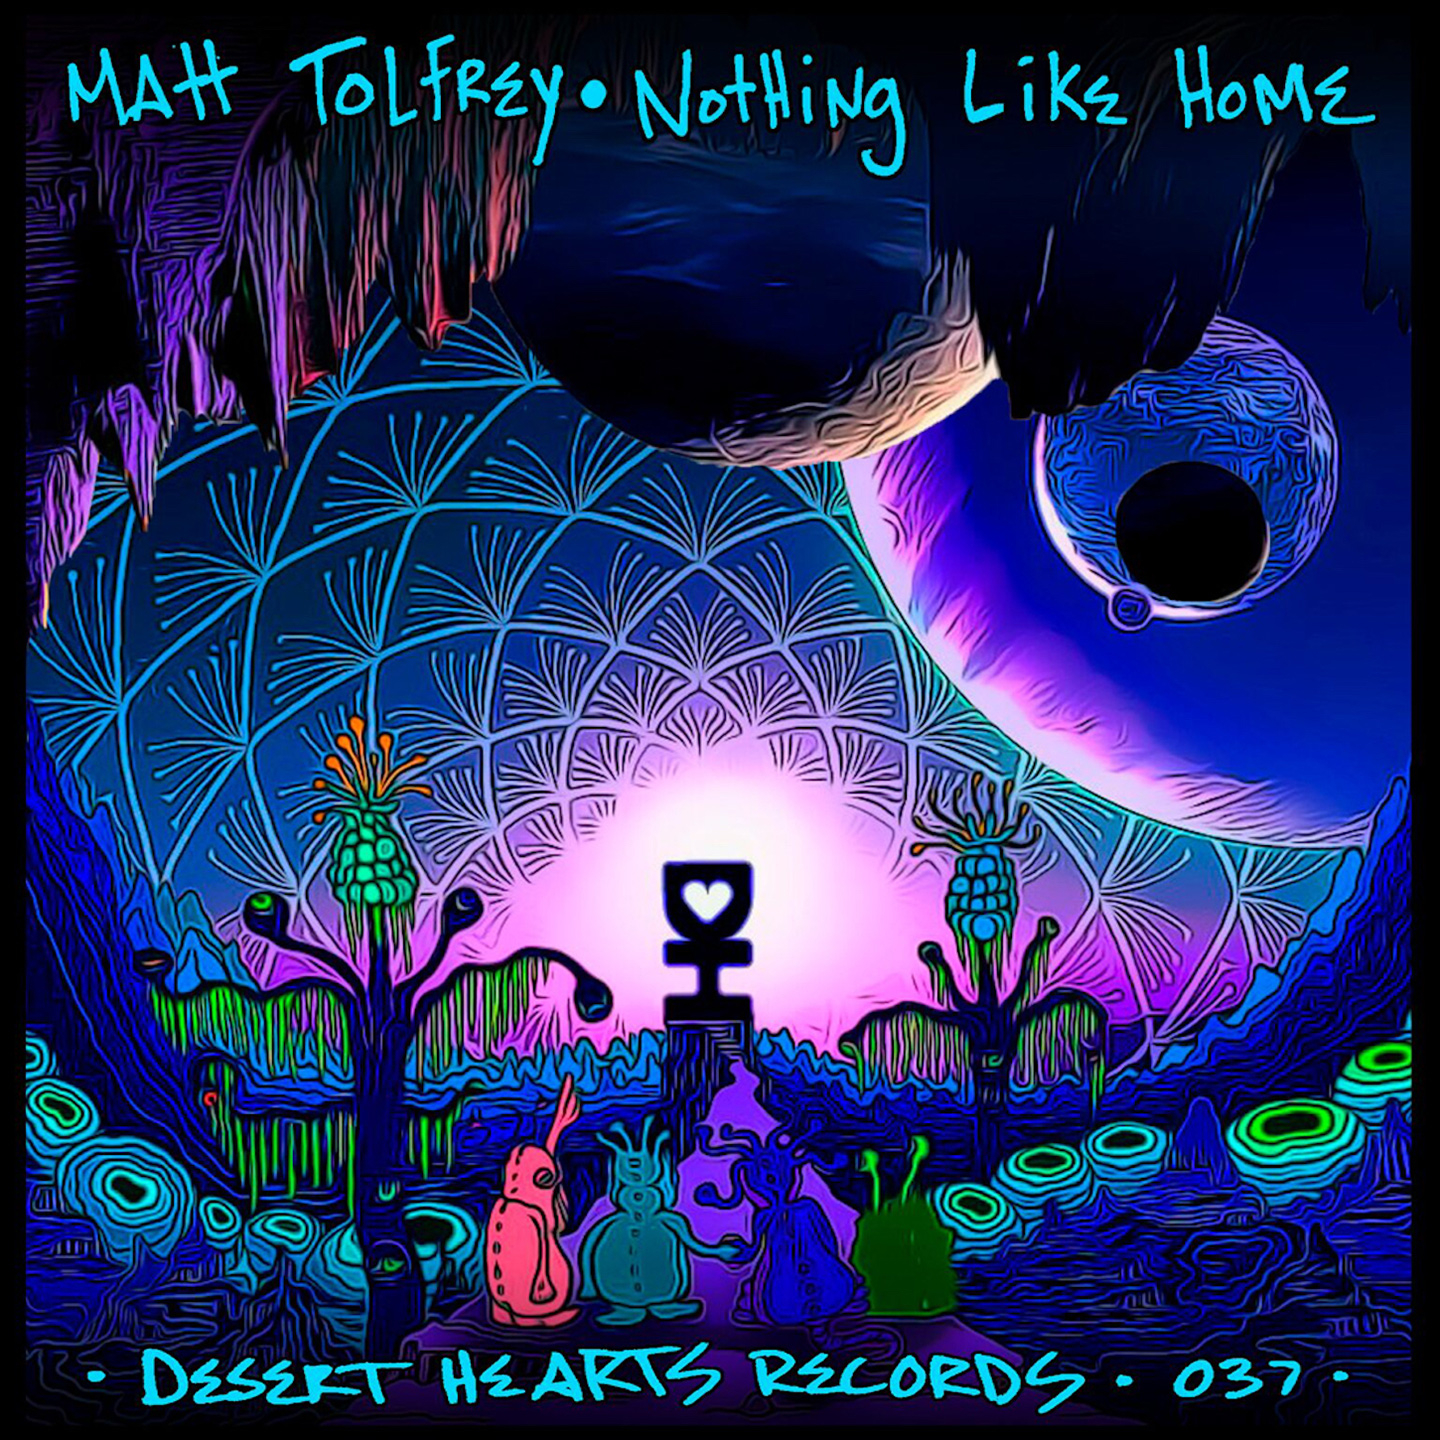 Matt Tolfrey - Nothing Like Home